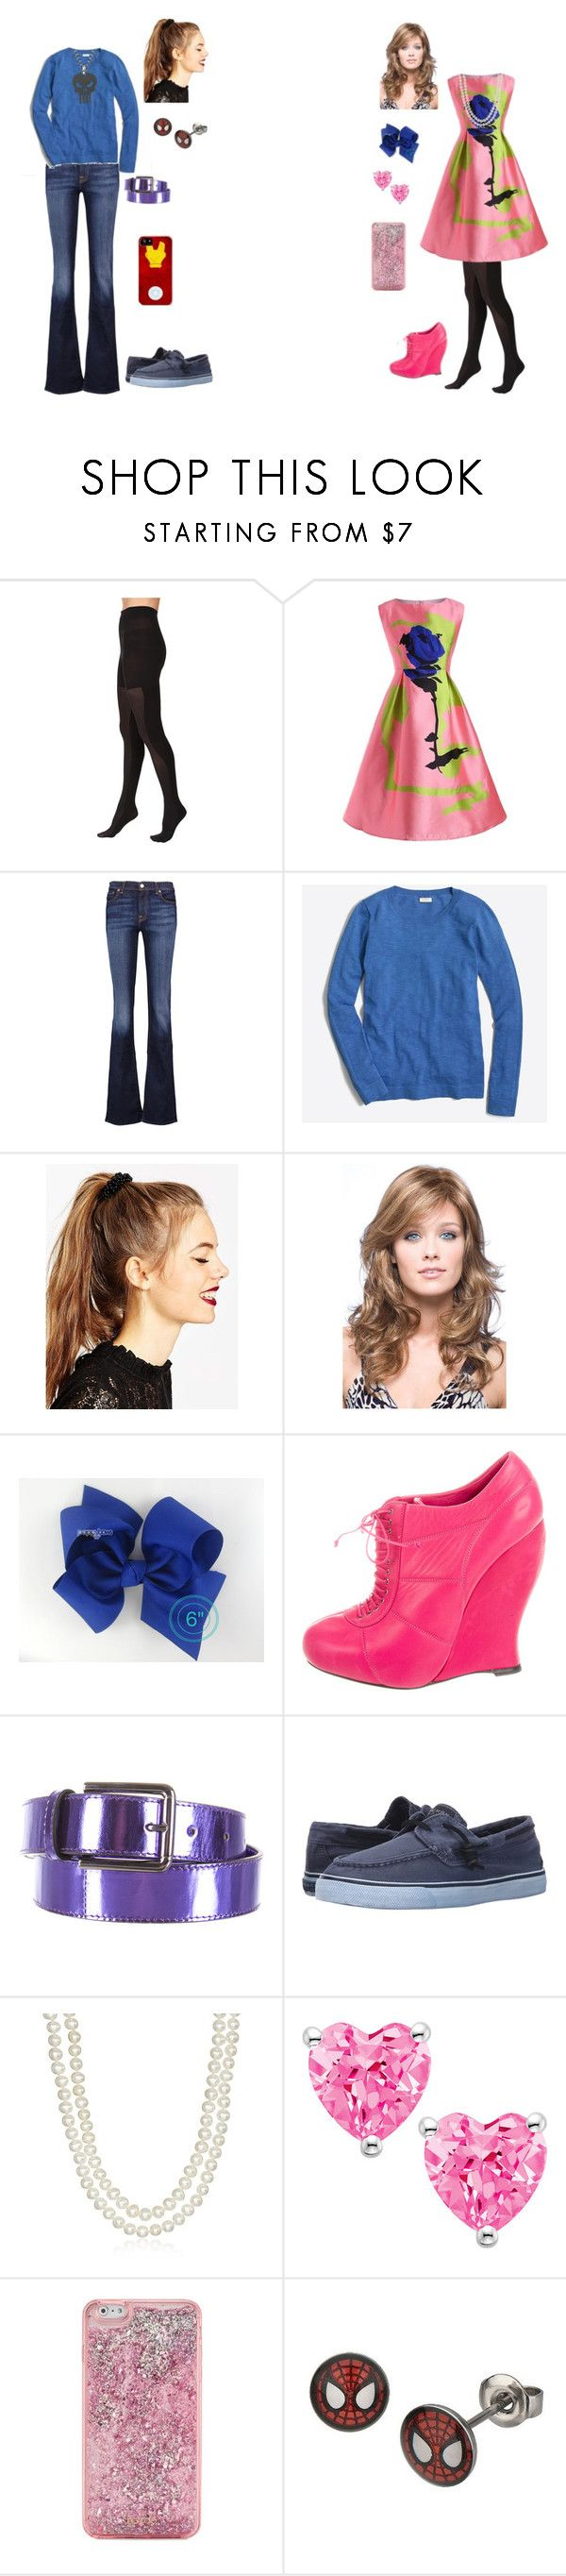 """""""Girly Girl vs Tomboy: Hospital outfits"""" by sierra-ivy on Polyvore featuring SPANX, 7 For All Mankind, J.Crew, ASOS, Nina Ricci, Ports 1961, Sperry, Honora, ban.do and Marvel"""